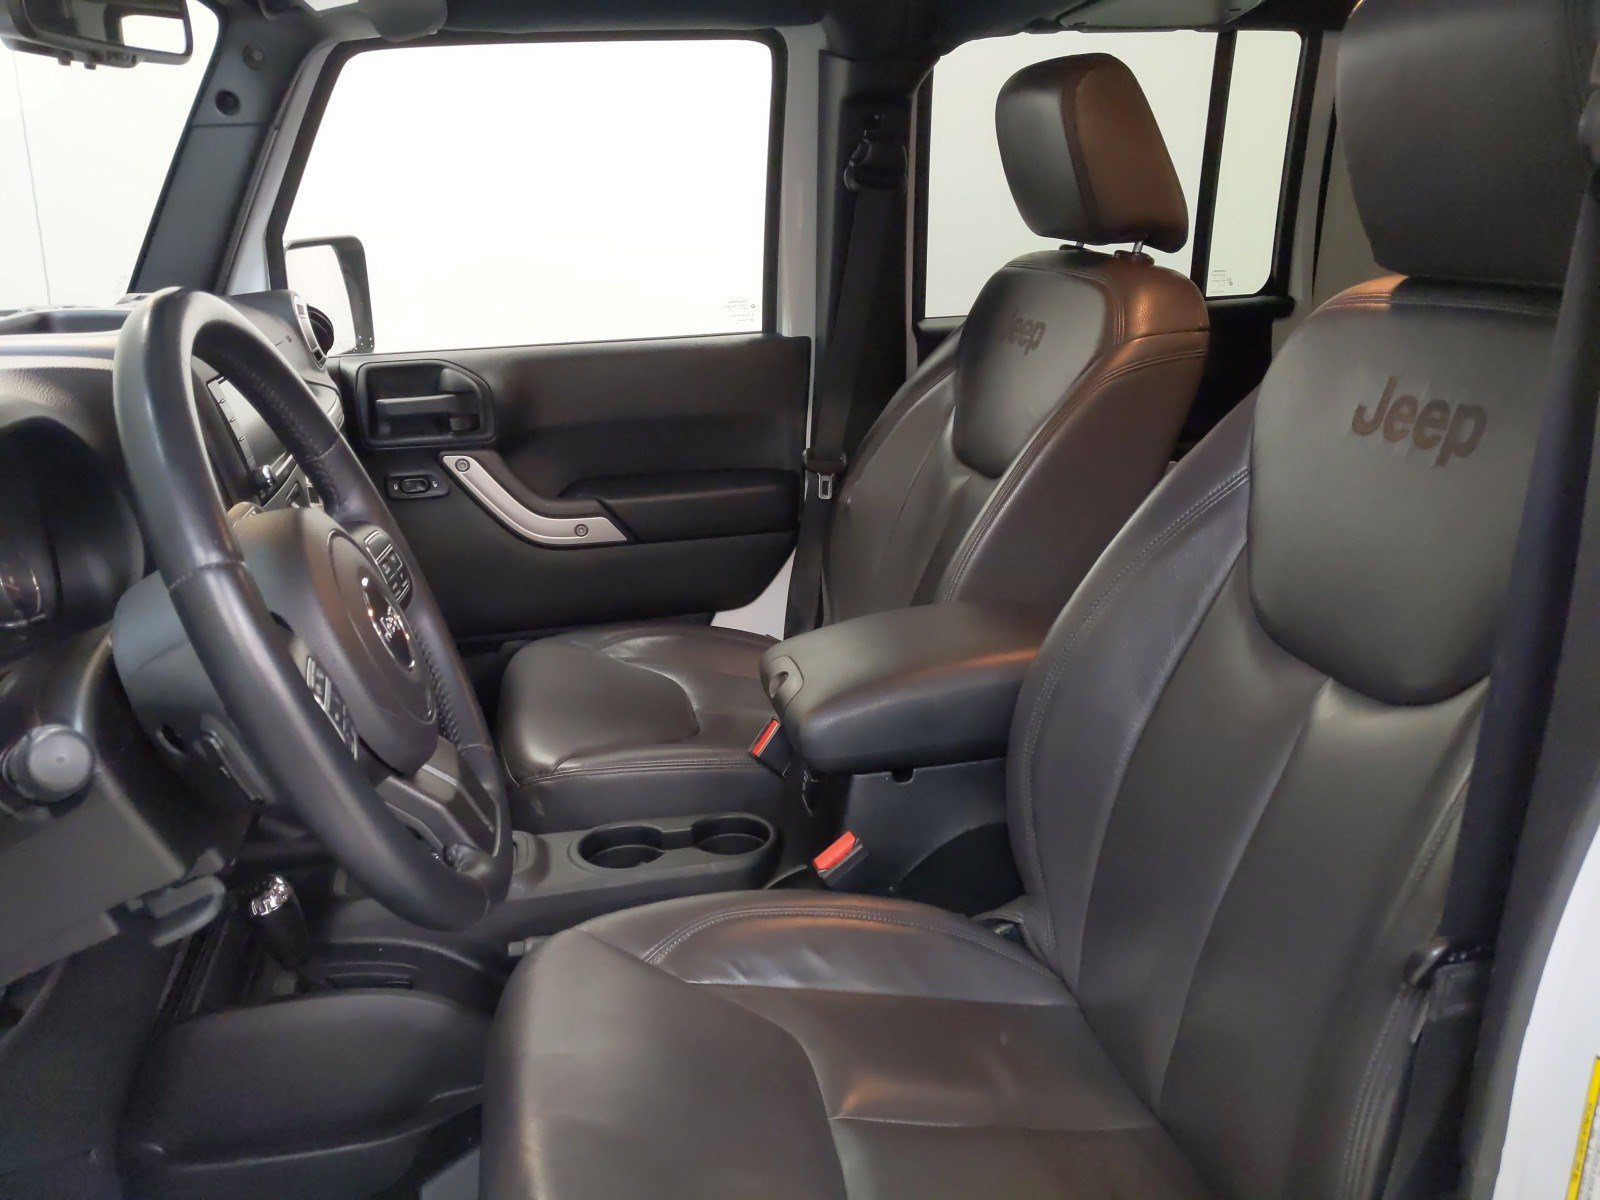 Used 2015 Jeep Wrangler Unlimited Rubicon Convertible for sale in Grand Island NE